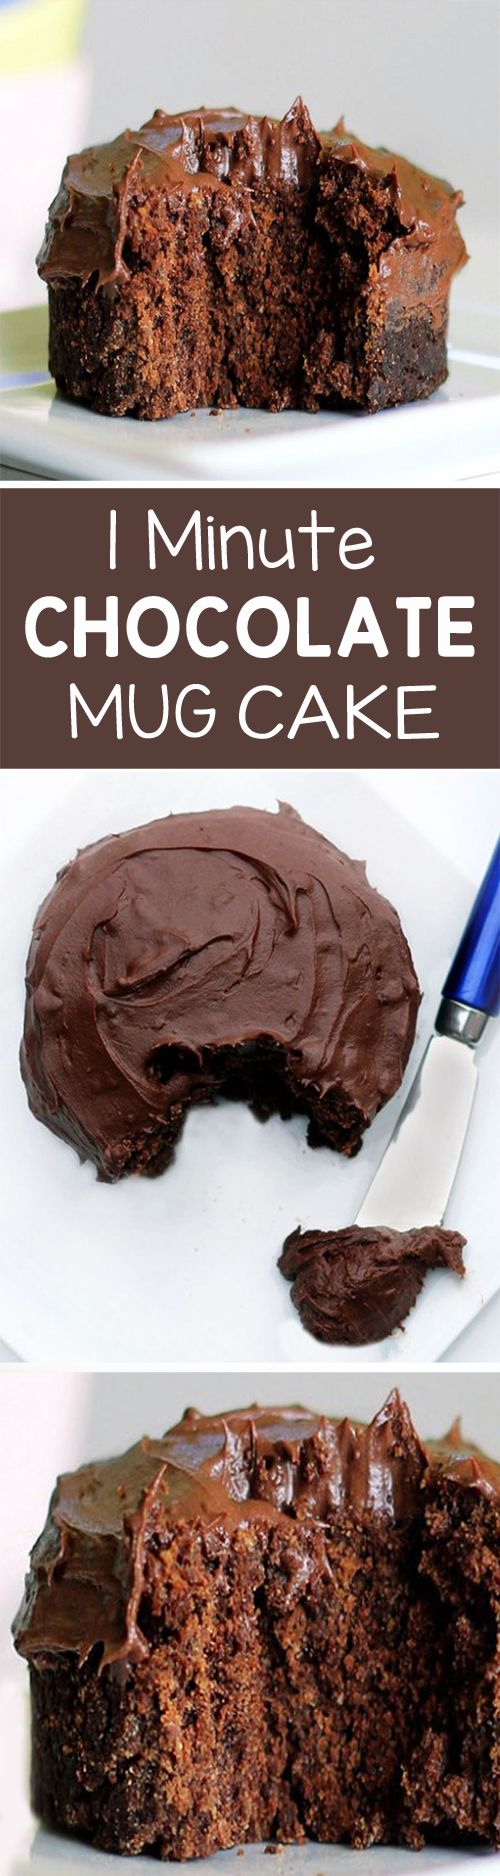 """1 Minute"" Chocolate Mug Cake - For when you're craving something gooey & chocolatey, but still want to be healthy... (under 200 calories)... @choccoveredkt https://chocolatecoveredkatie.com/2011/11/06/one-minute-chocolate-cake/"